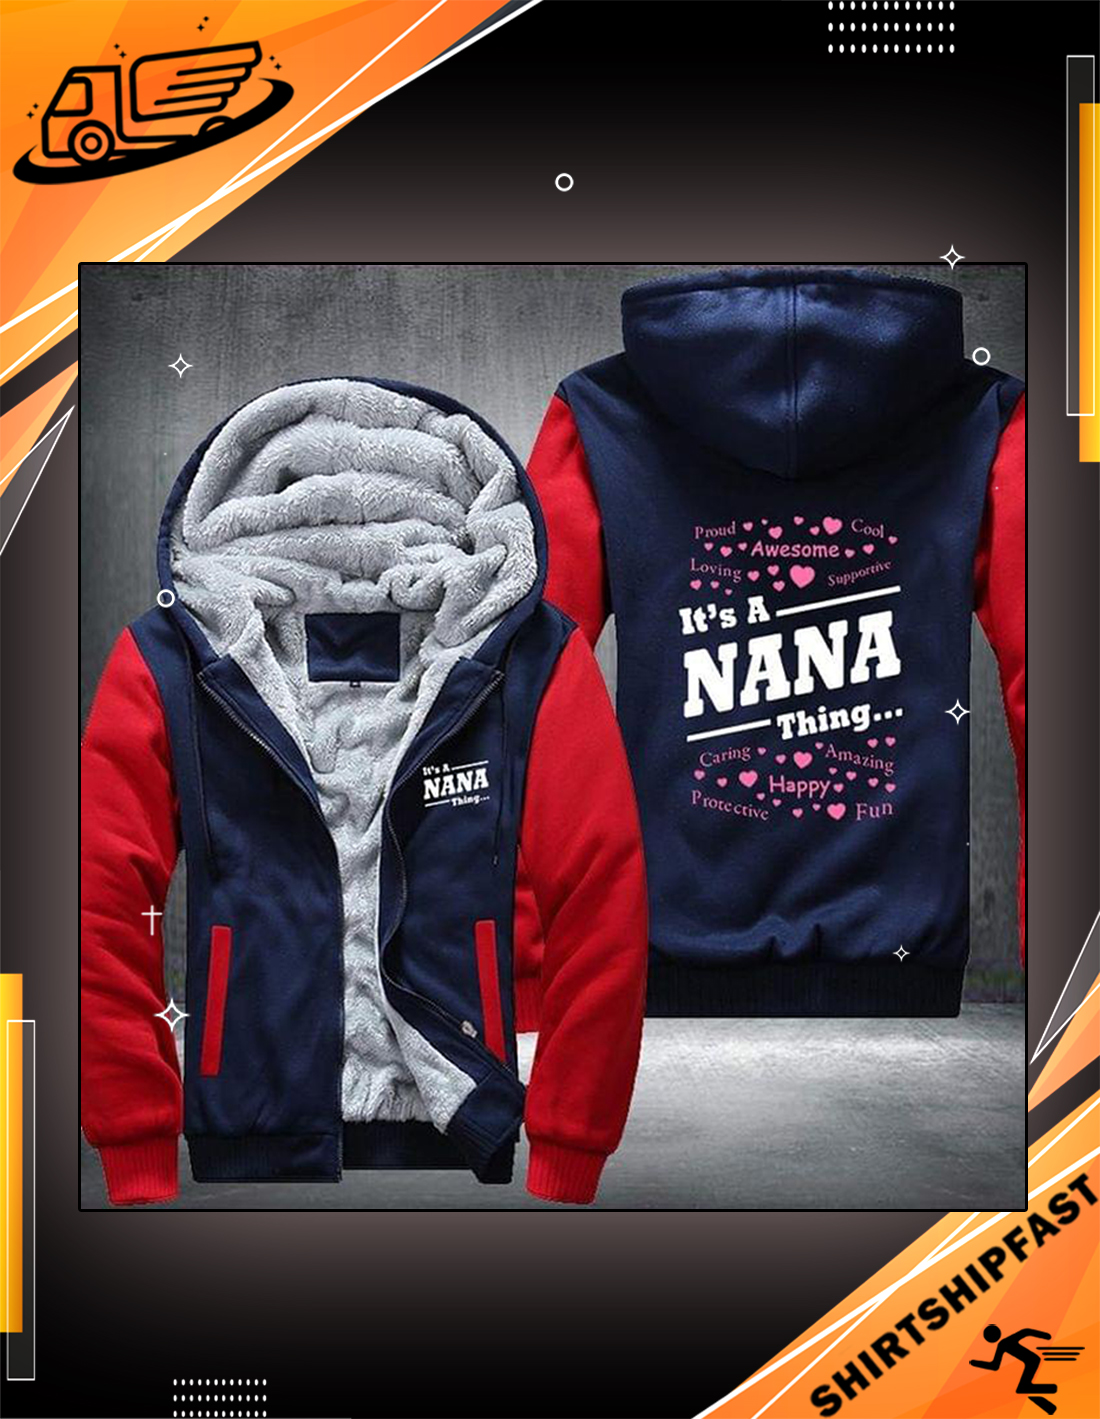 It's a nana thing fleece hoodie - Picture 3